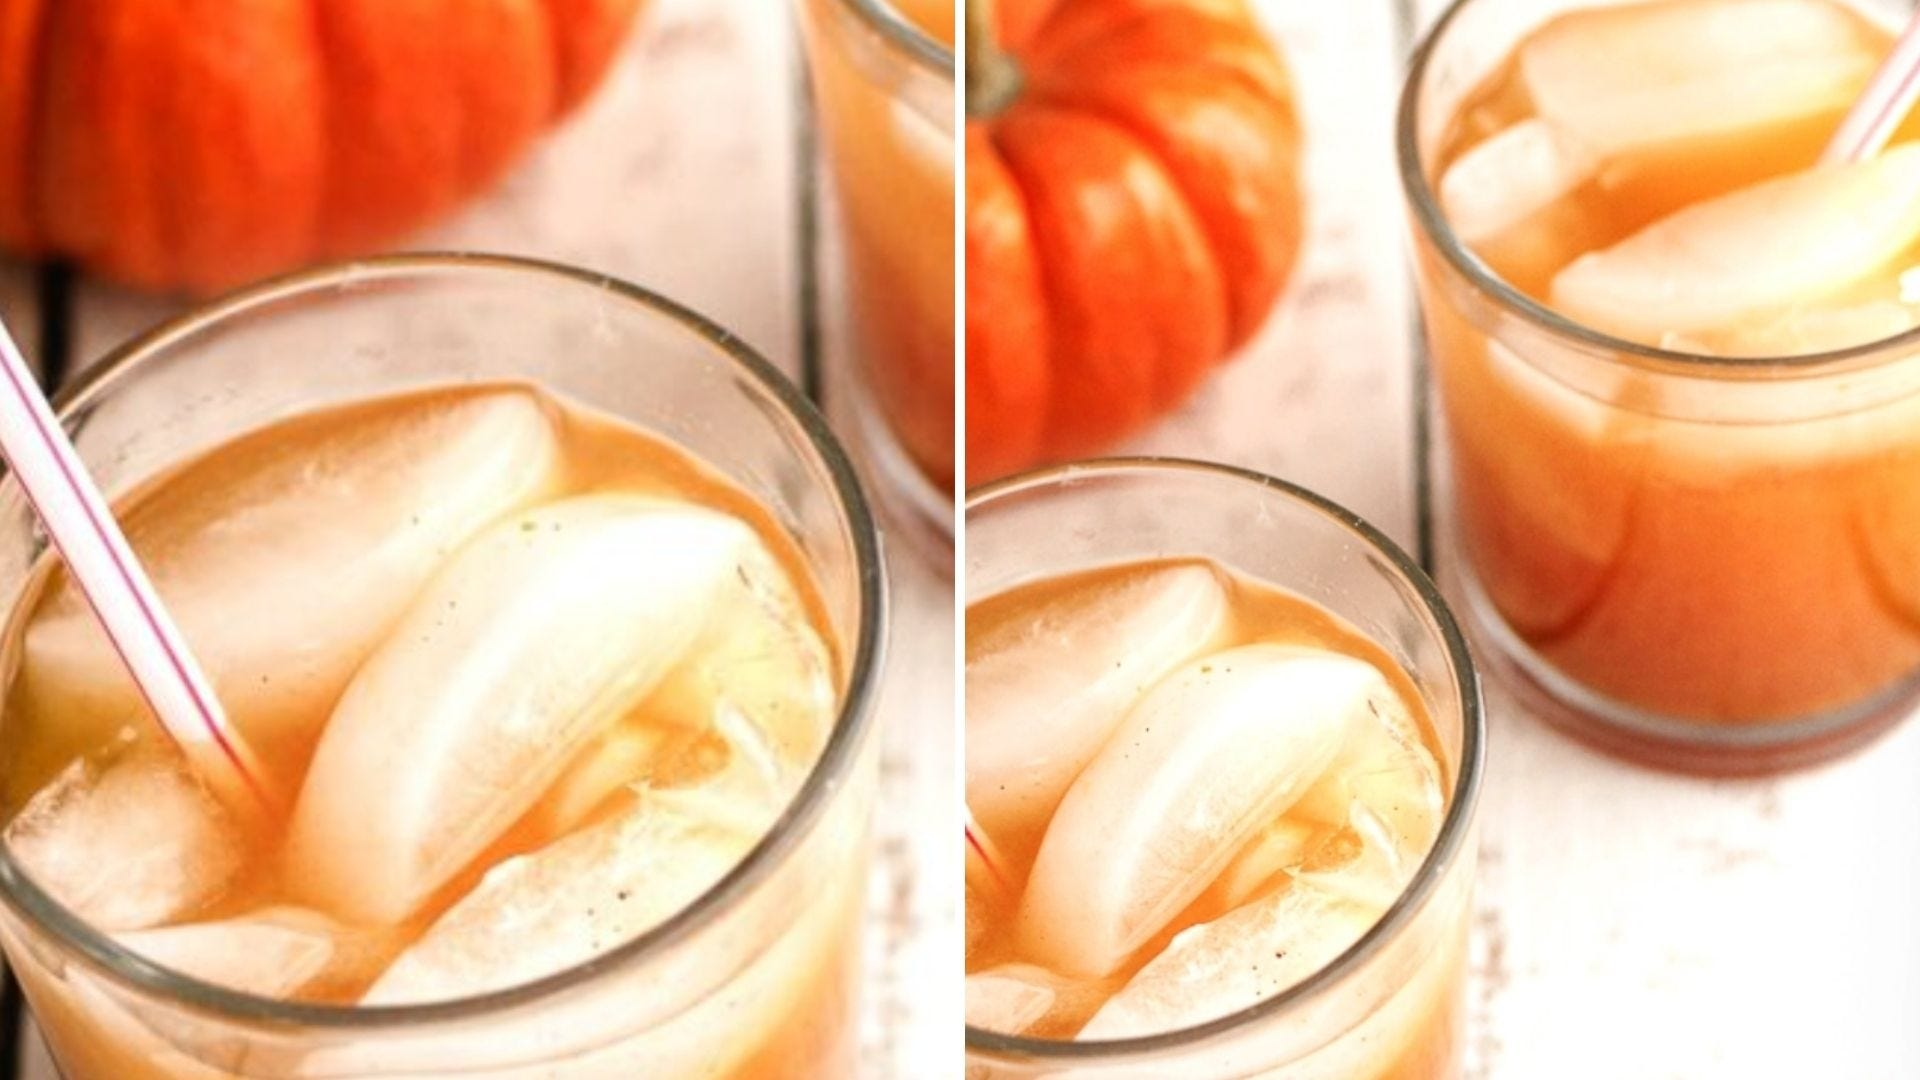 Glasses with a pumpkin drink inside and ice cubes on top